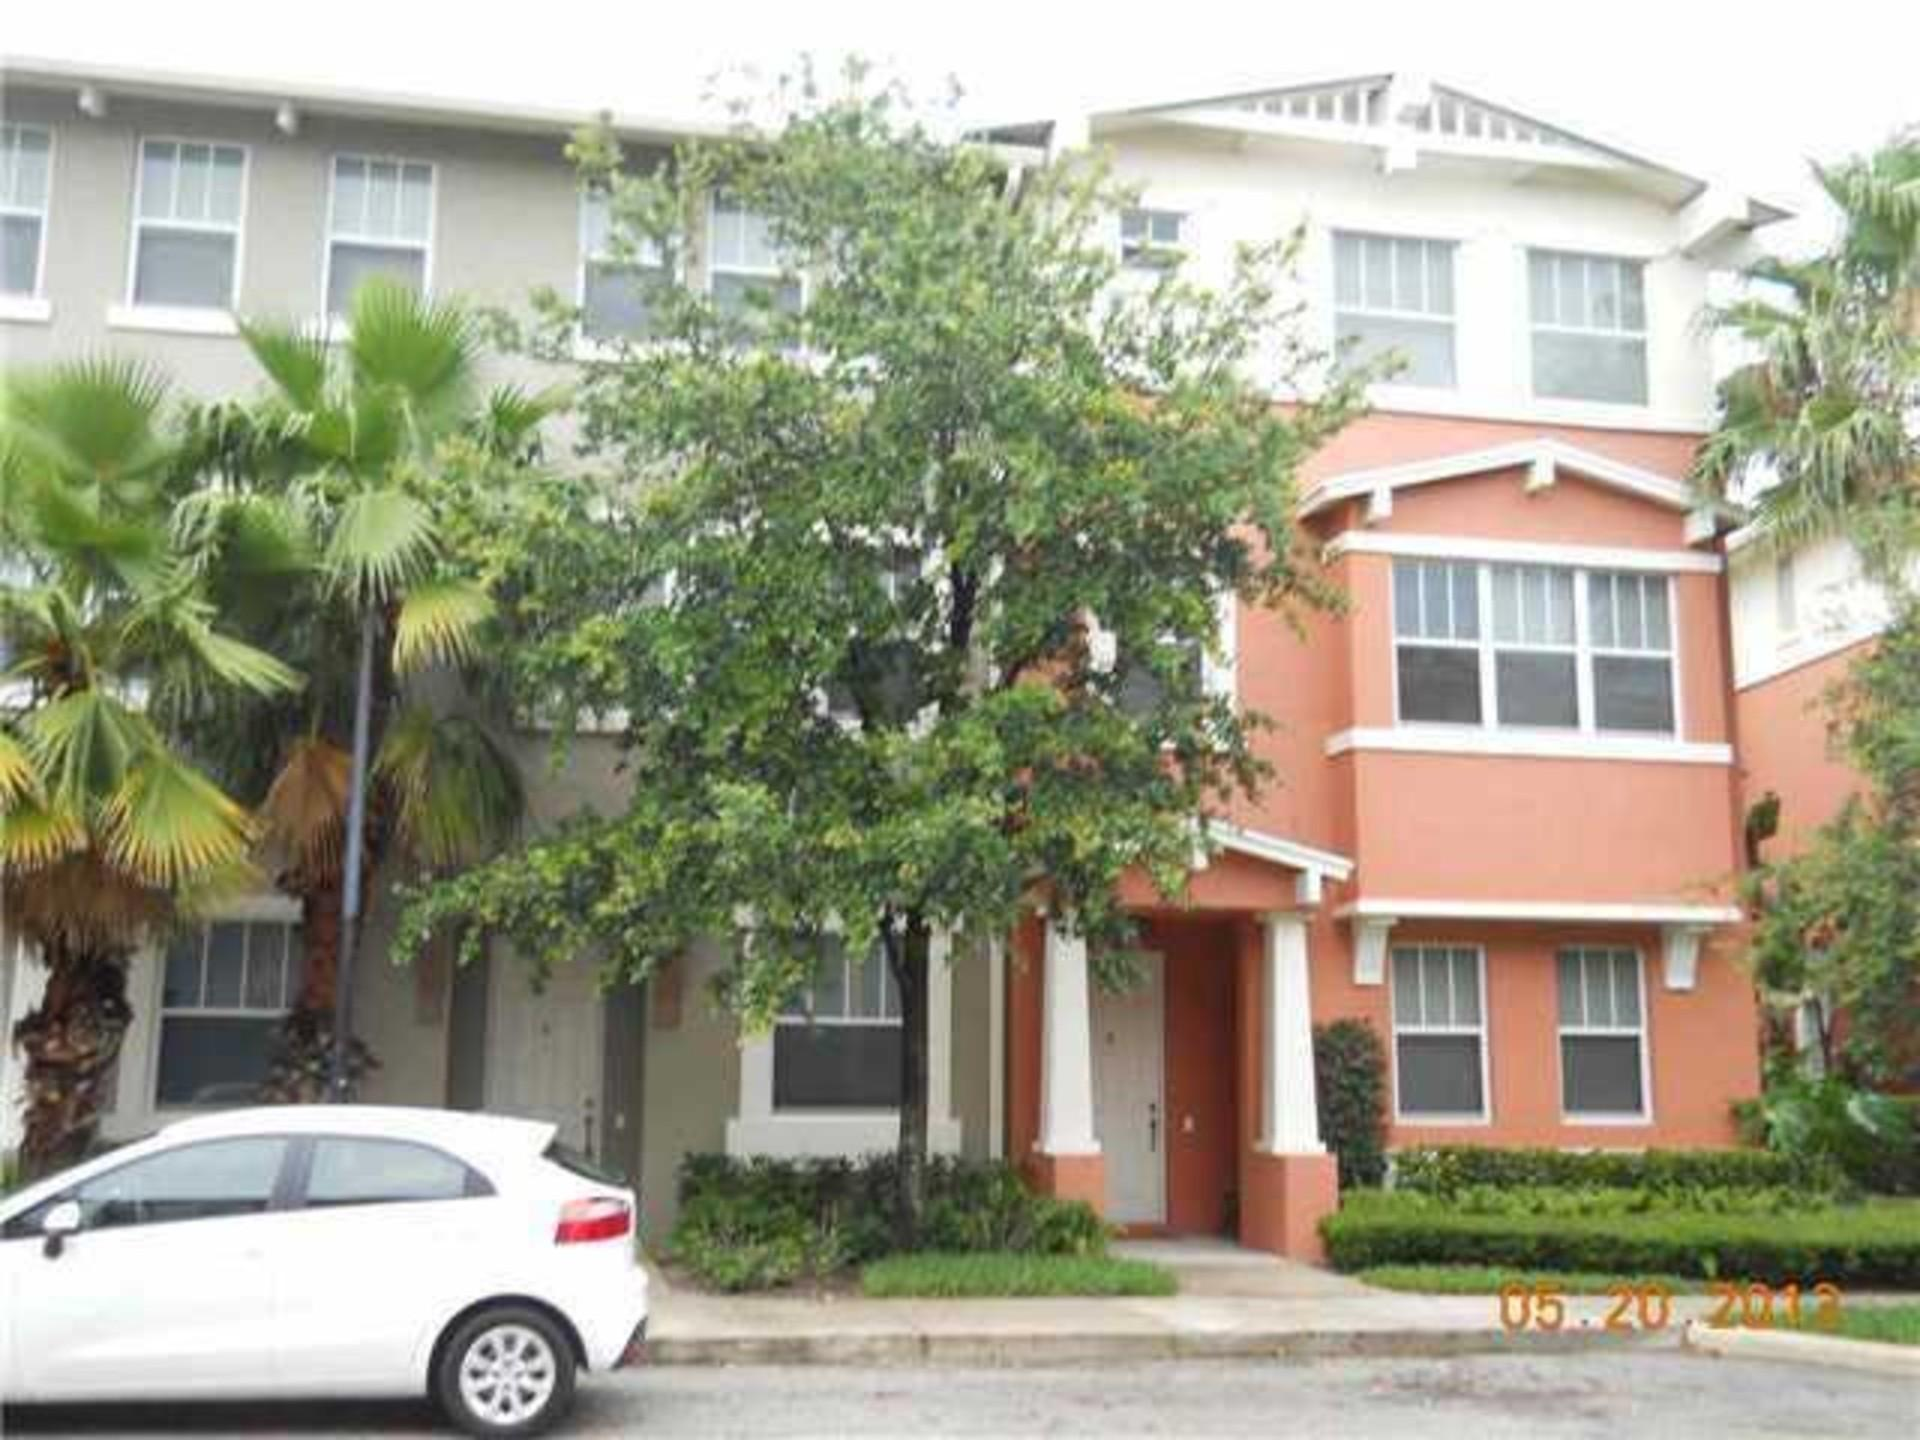 Cityside For Rent - West Palm Beach, FL | Trulia